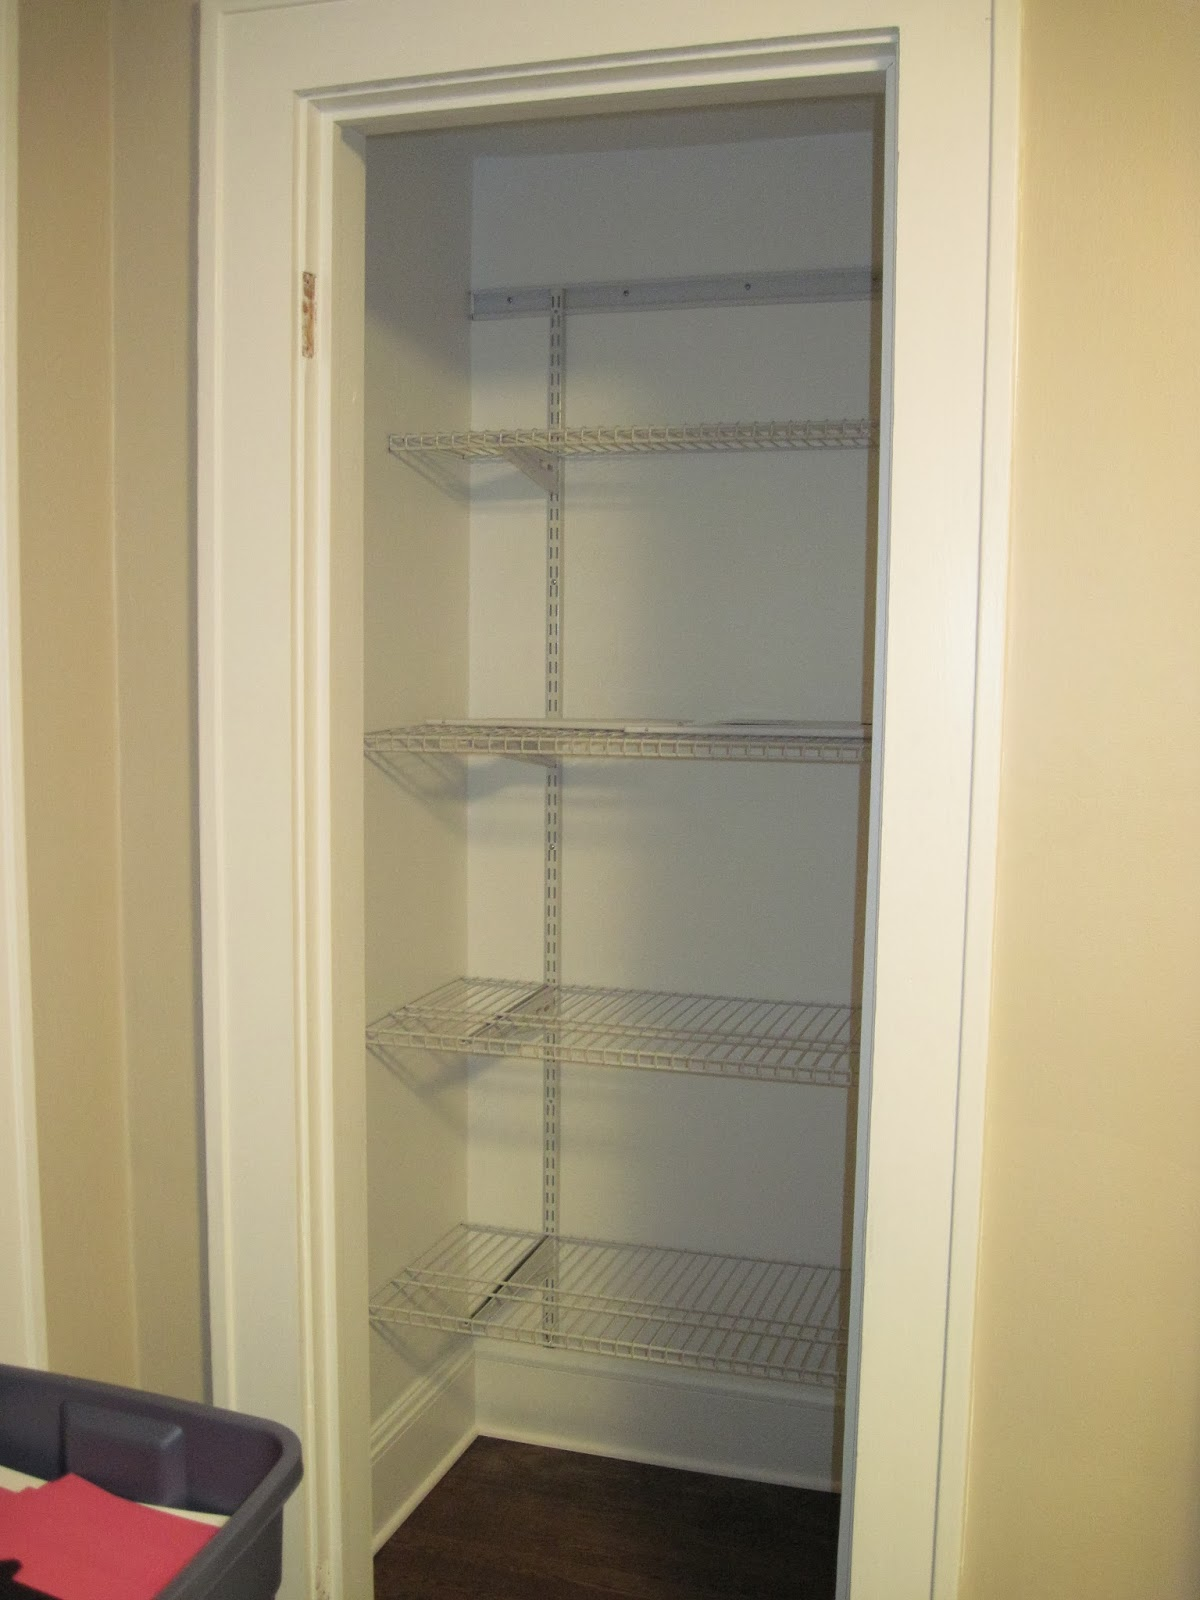 The shelves can be moved to accommodate different heights or taken out